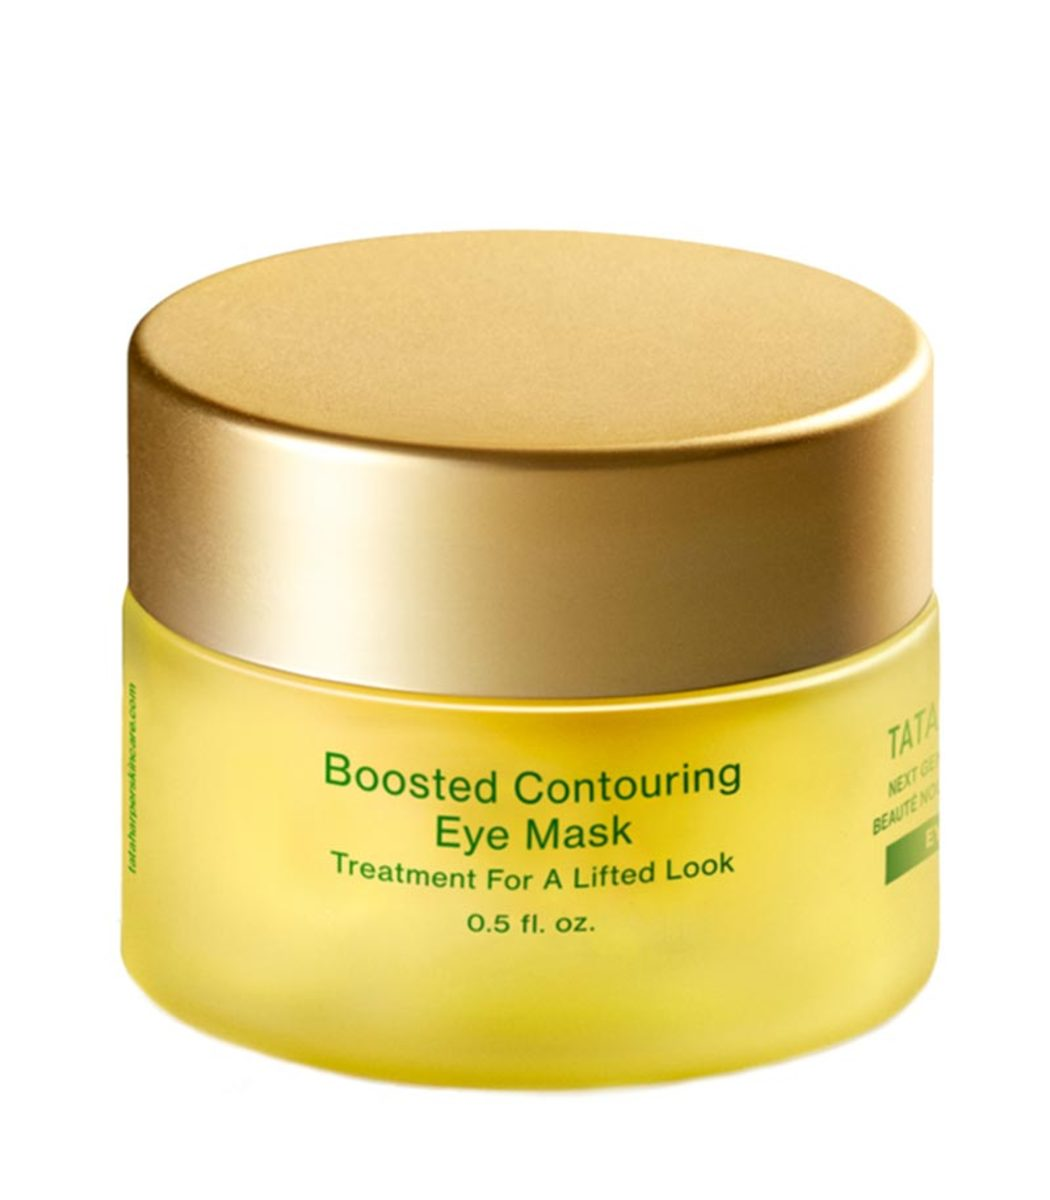 Boosted Contour Eye Mask Jar